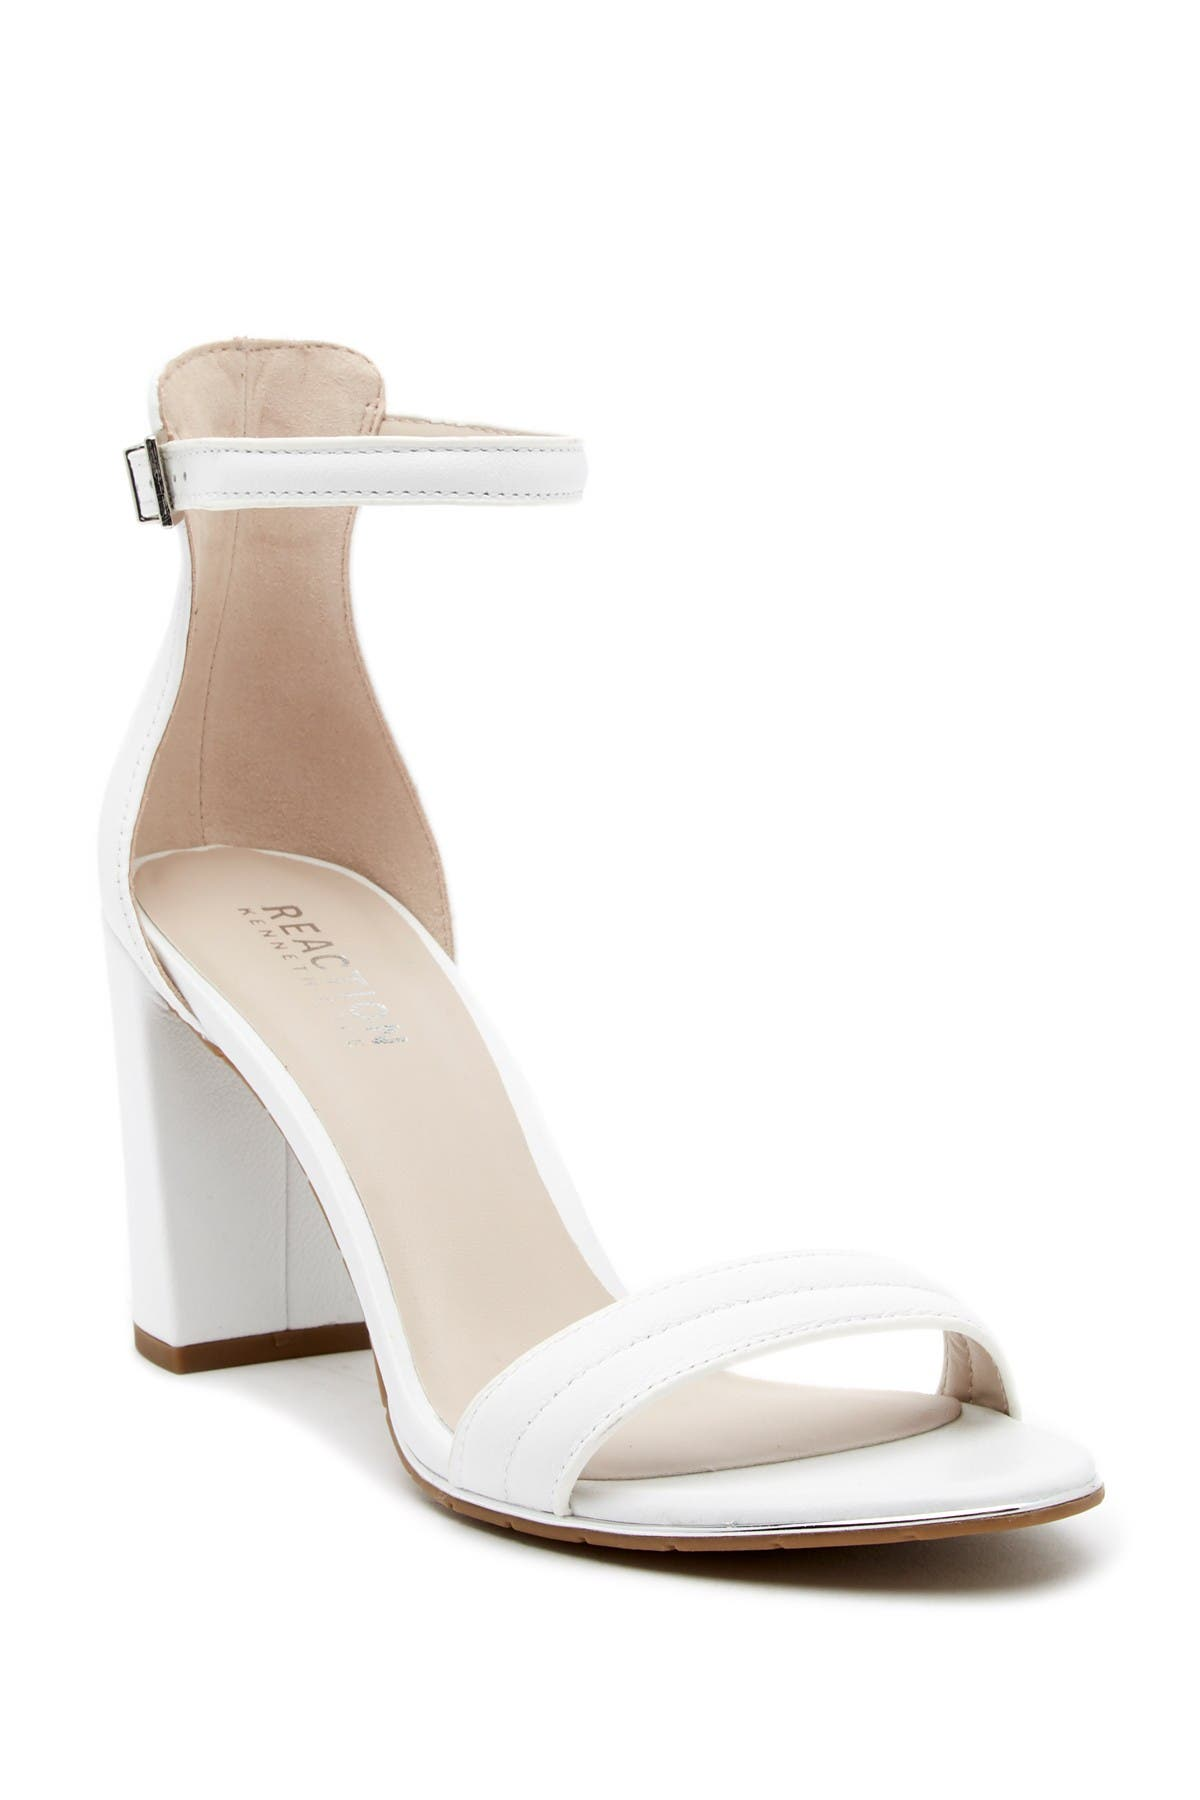 Image of Kenneth Cole Reaction Lolita Sandal